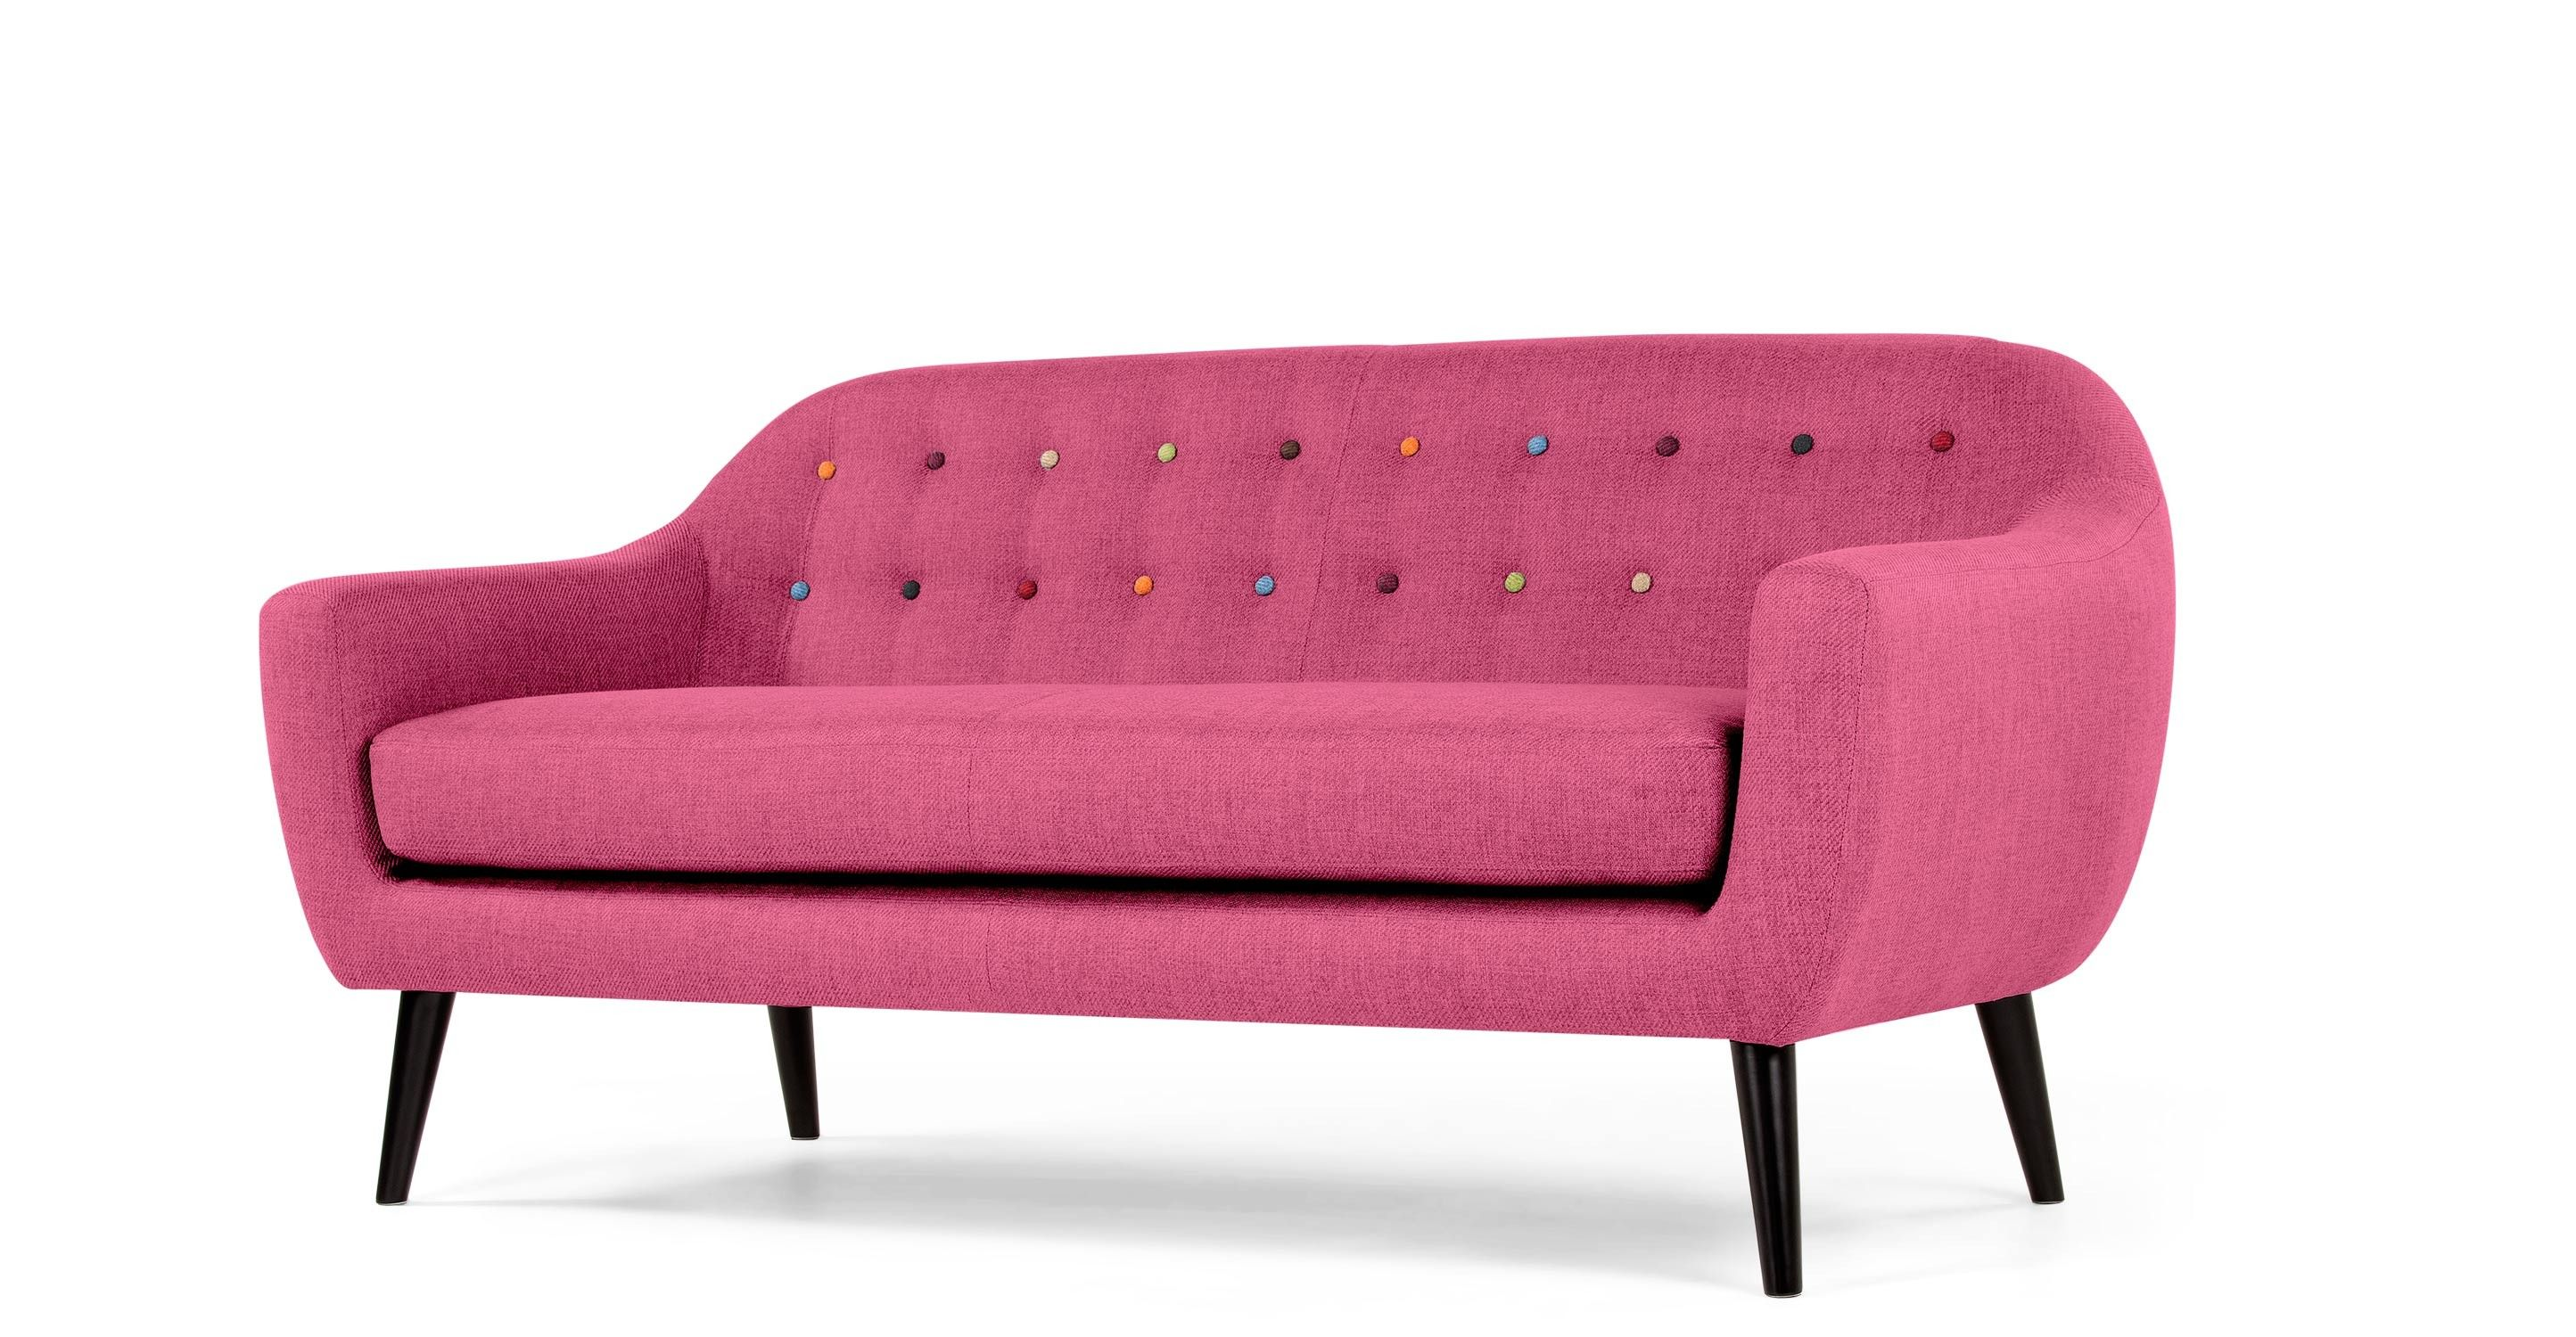 Ritchie 3 Seater Sofa Candy Pink With Rainbow Buttons 3 Seater Sofa Cheap Sofa Sets White Leather Chair